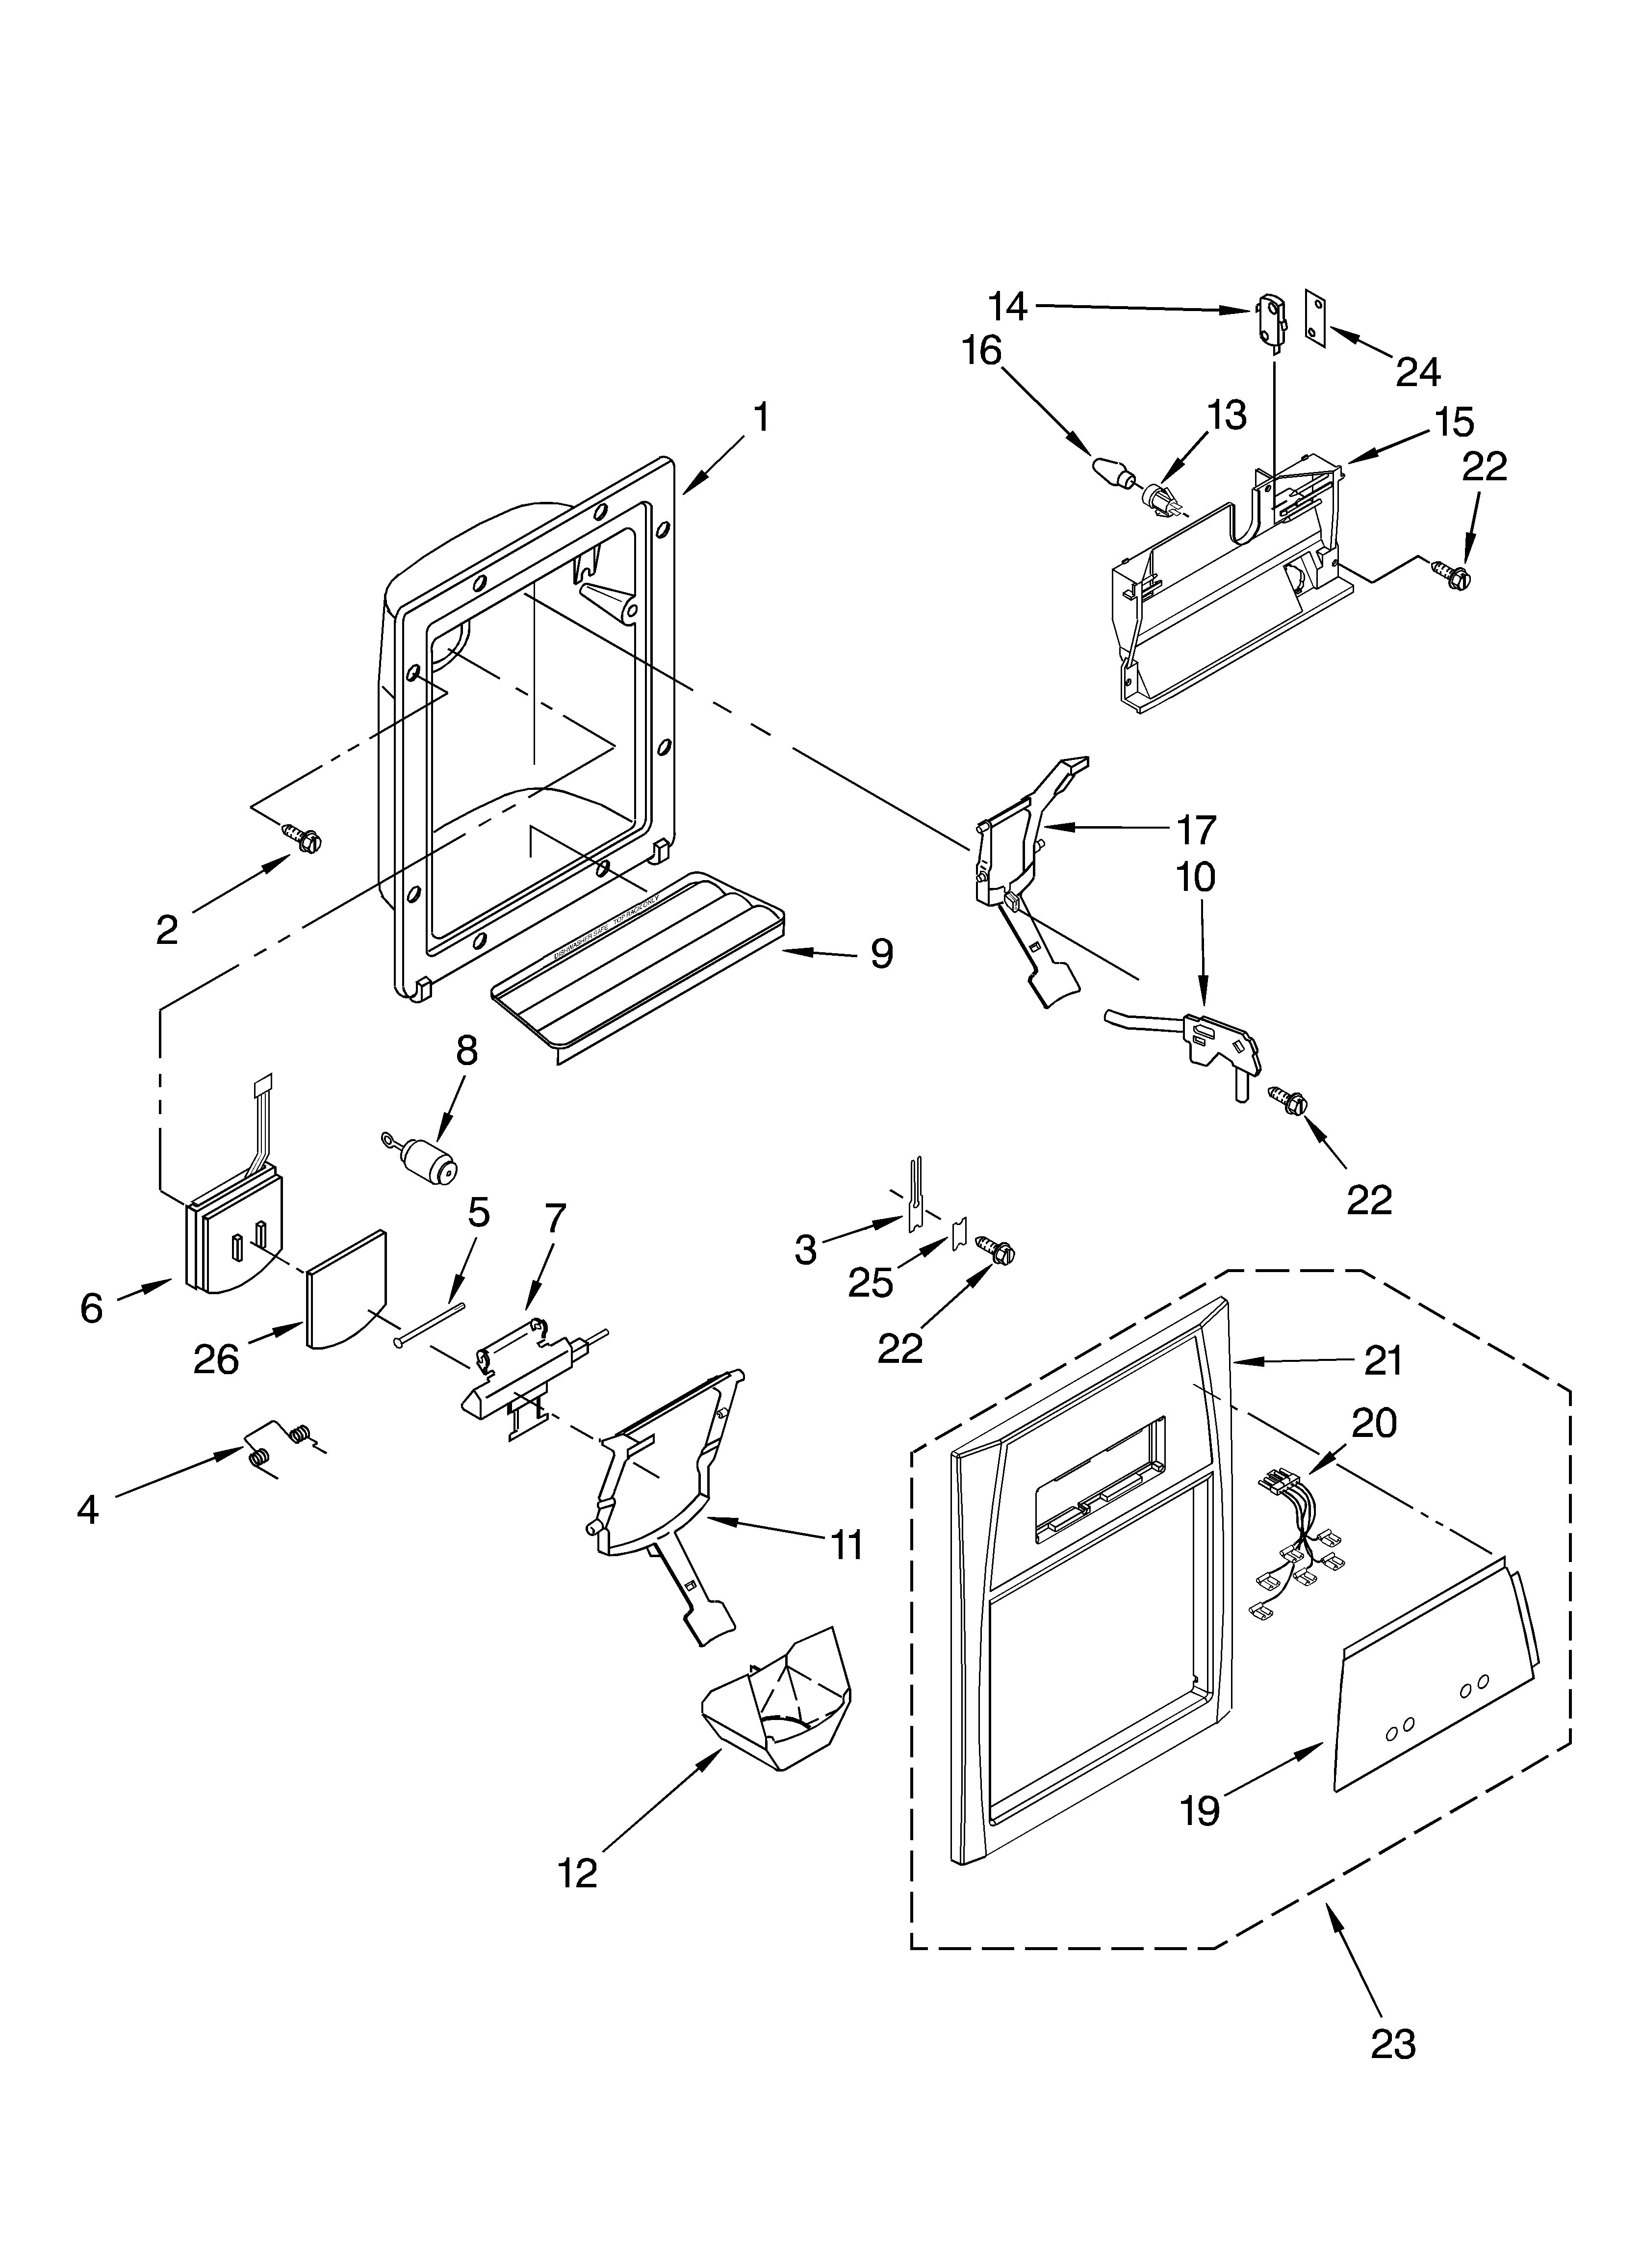 Whirlpool ED5NHGXMT00 dispenser front parts diagram